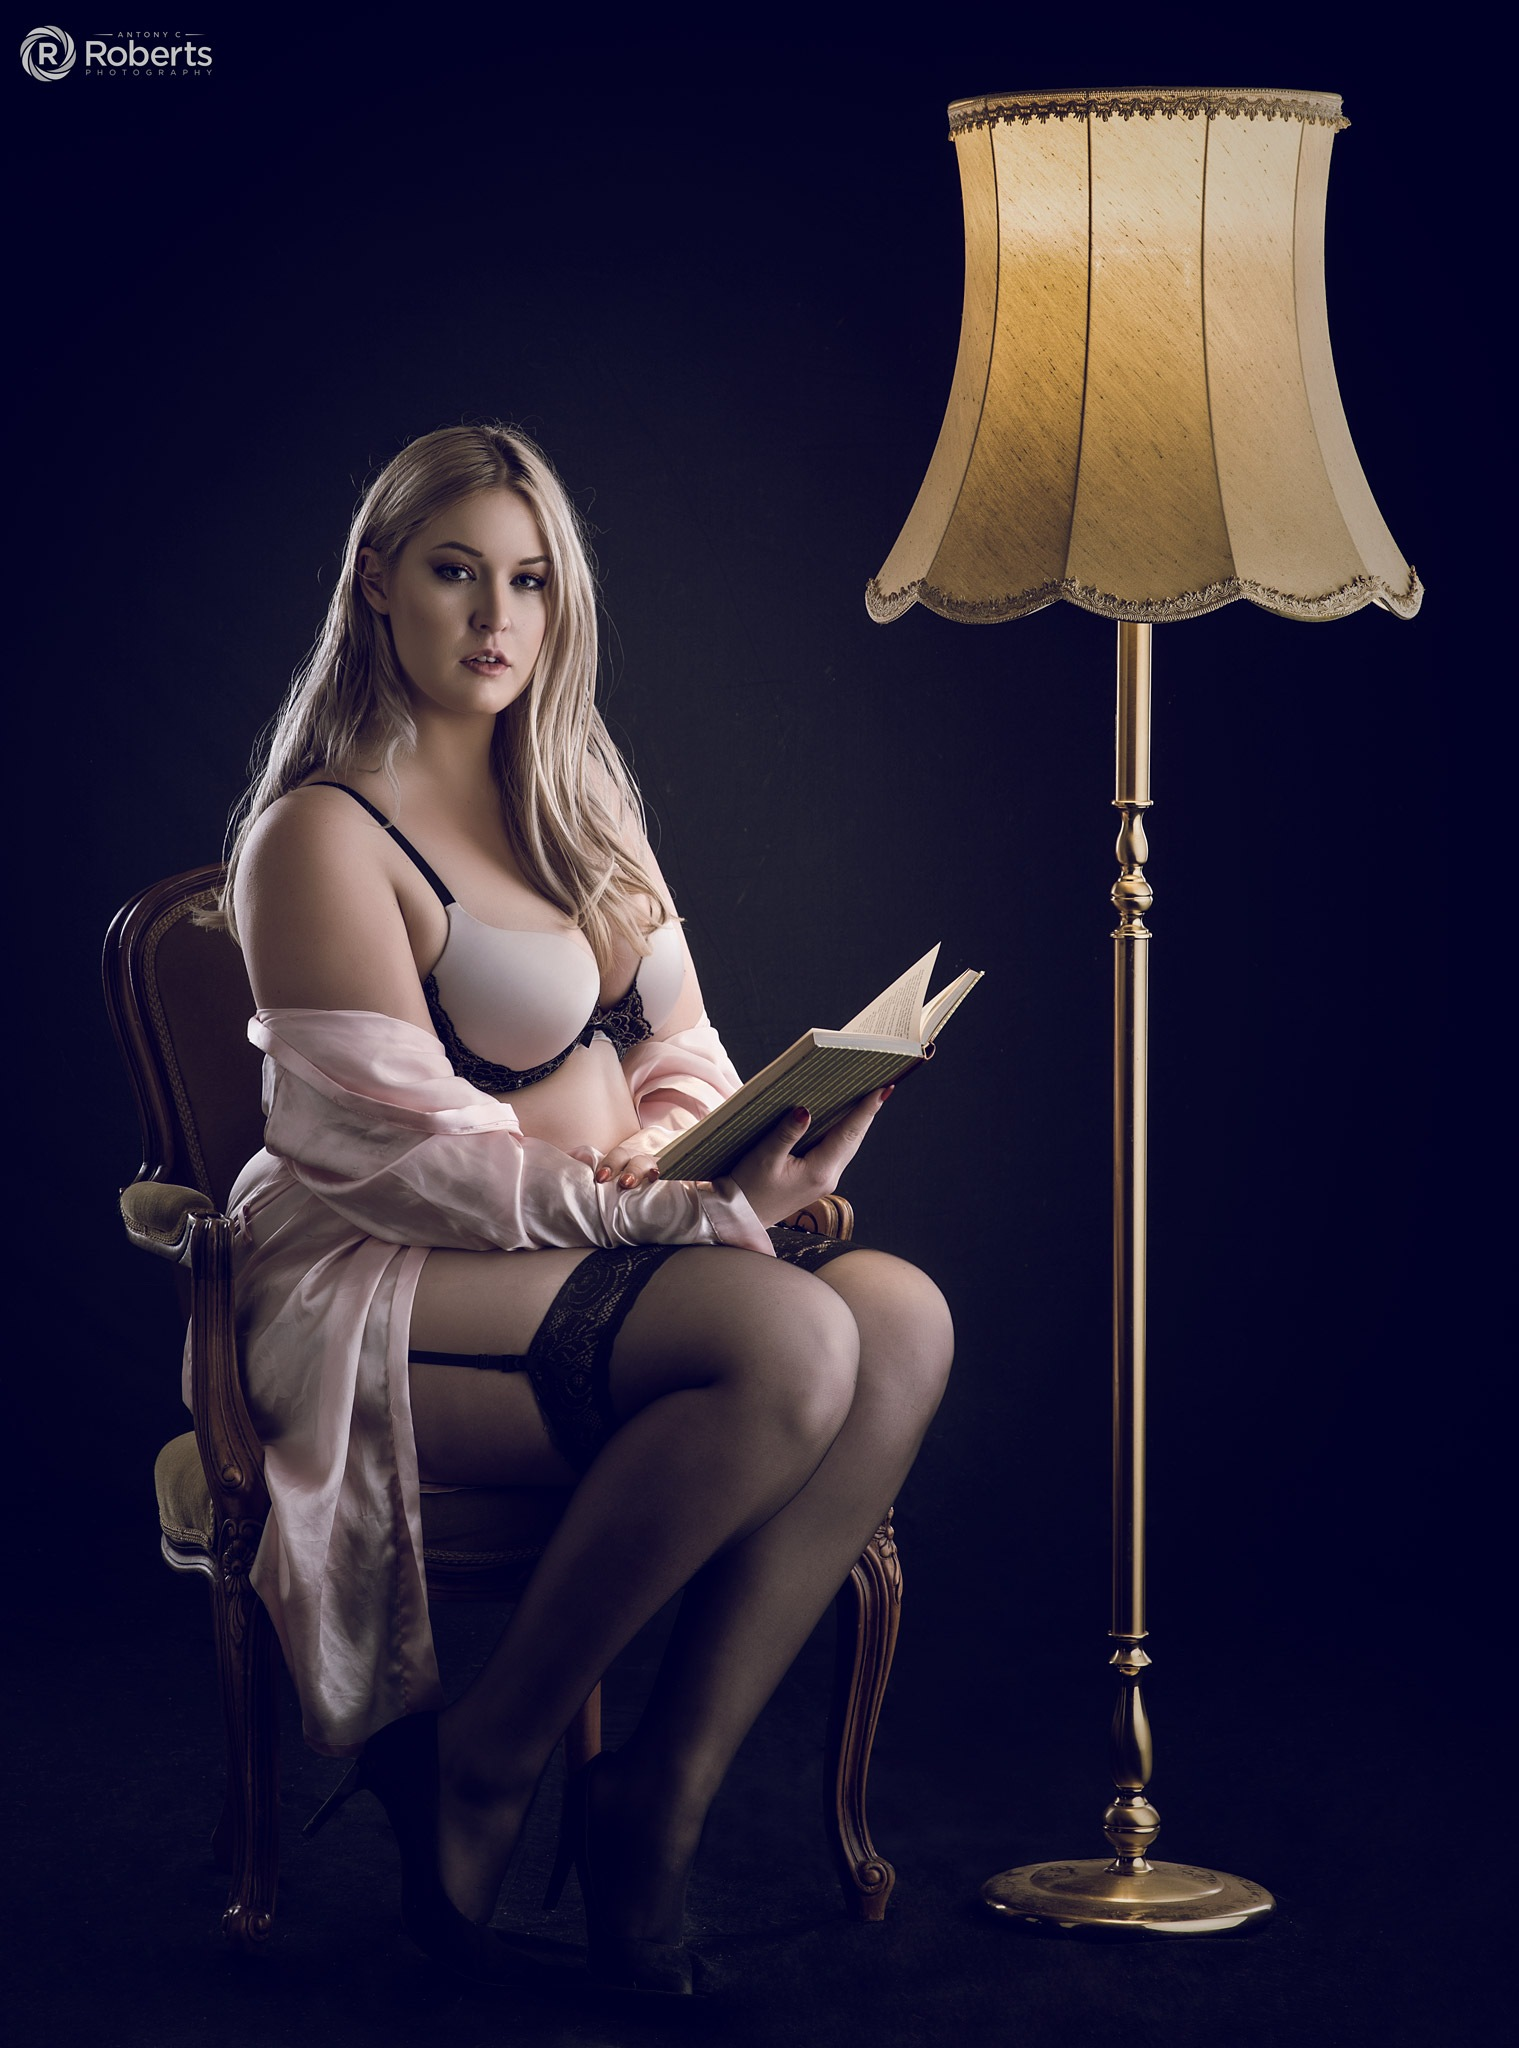 By lamp light by Antony Roberts